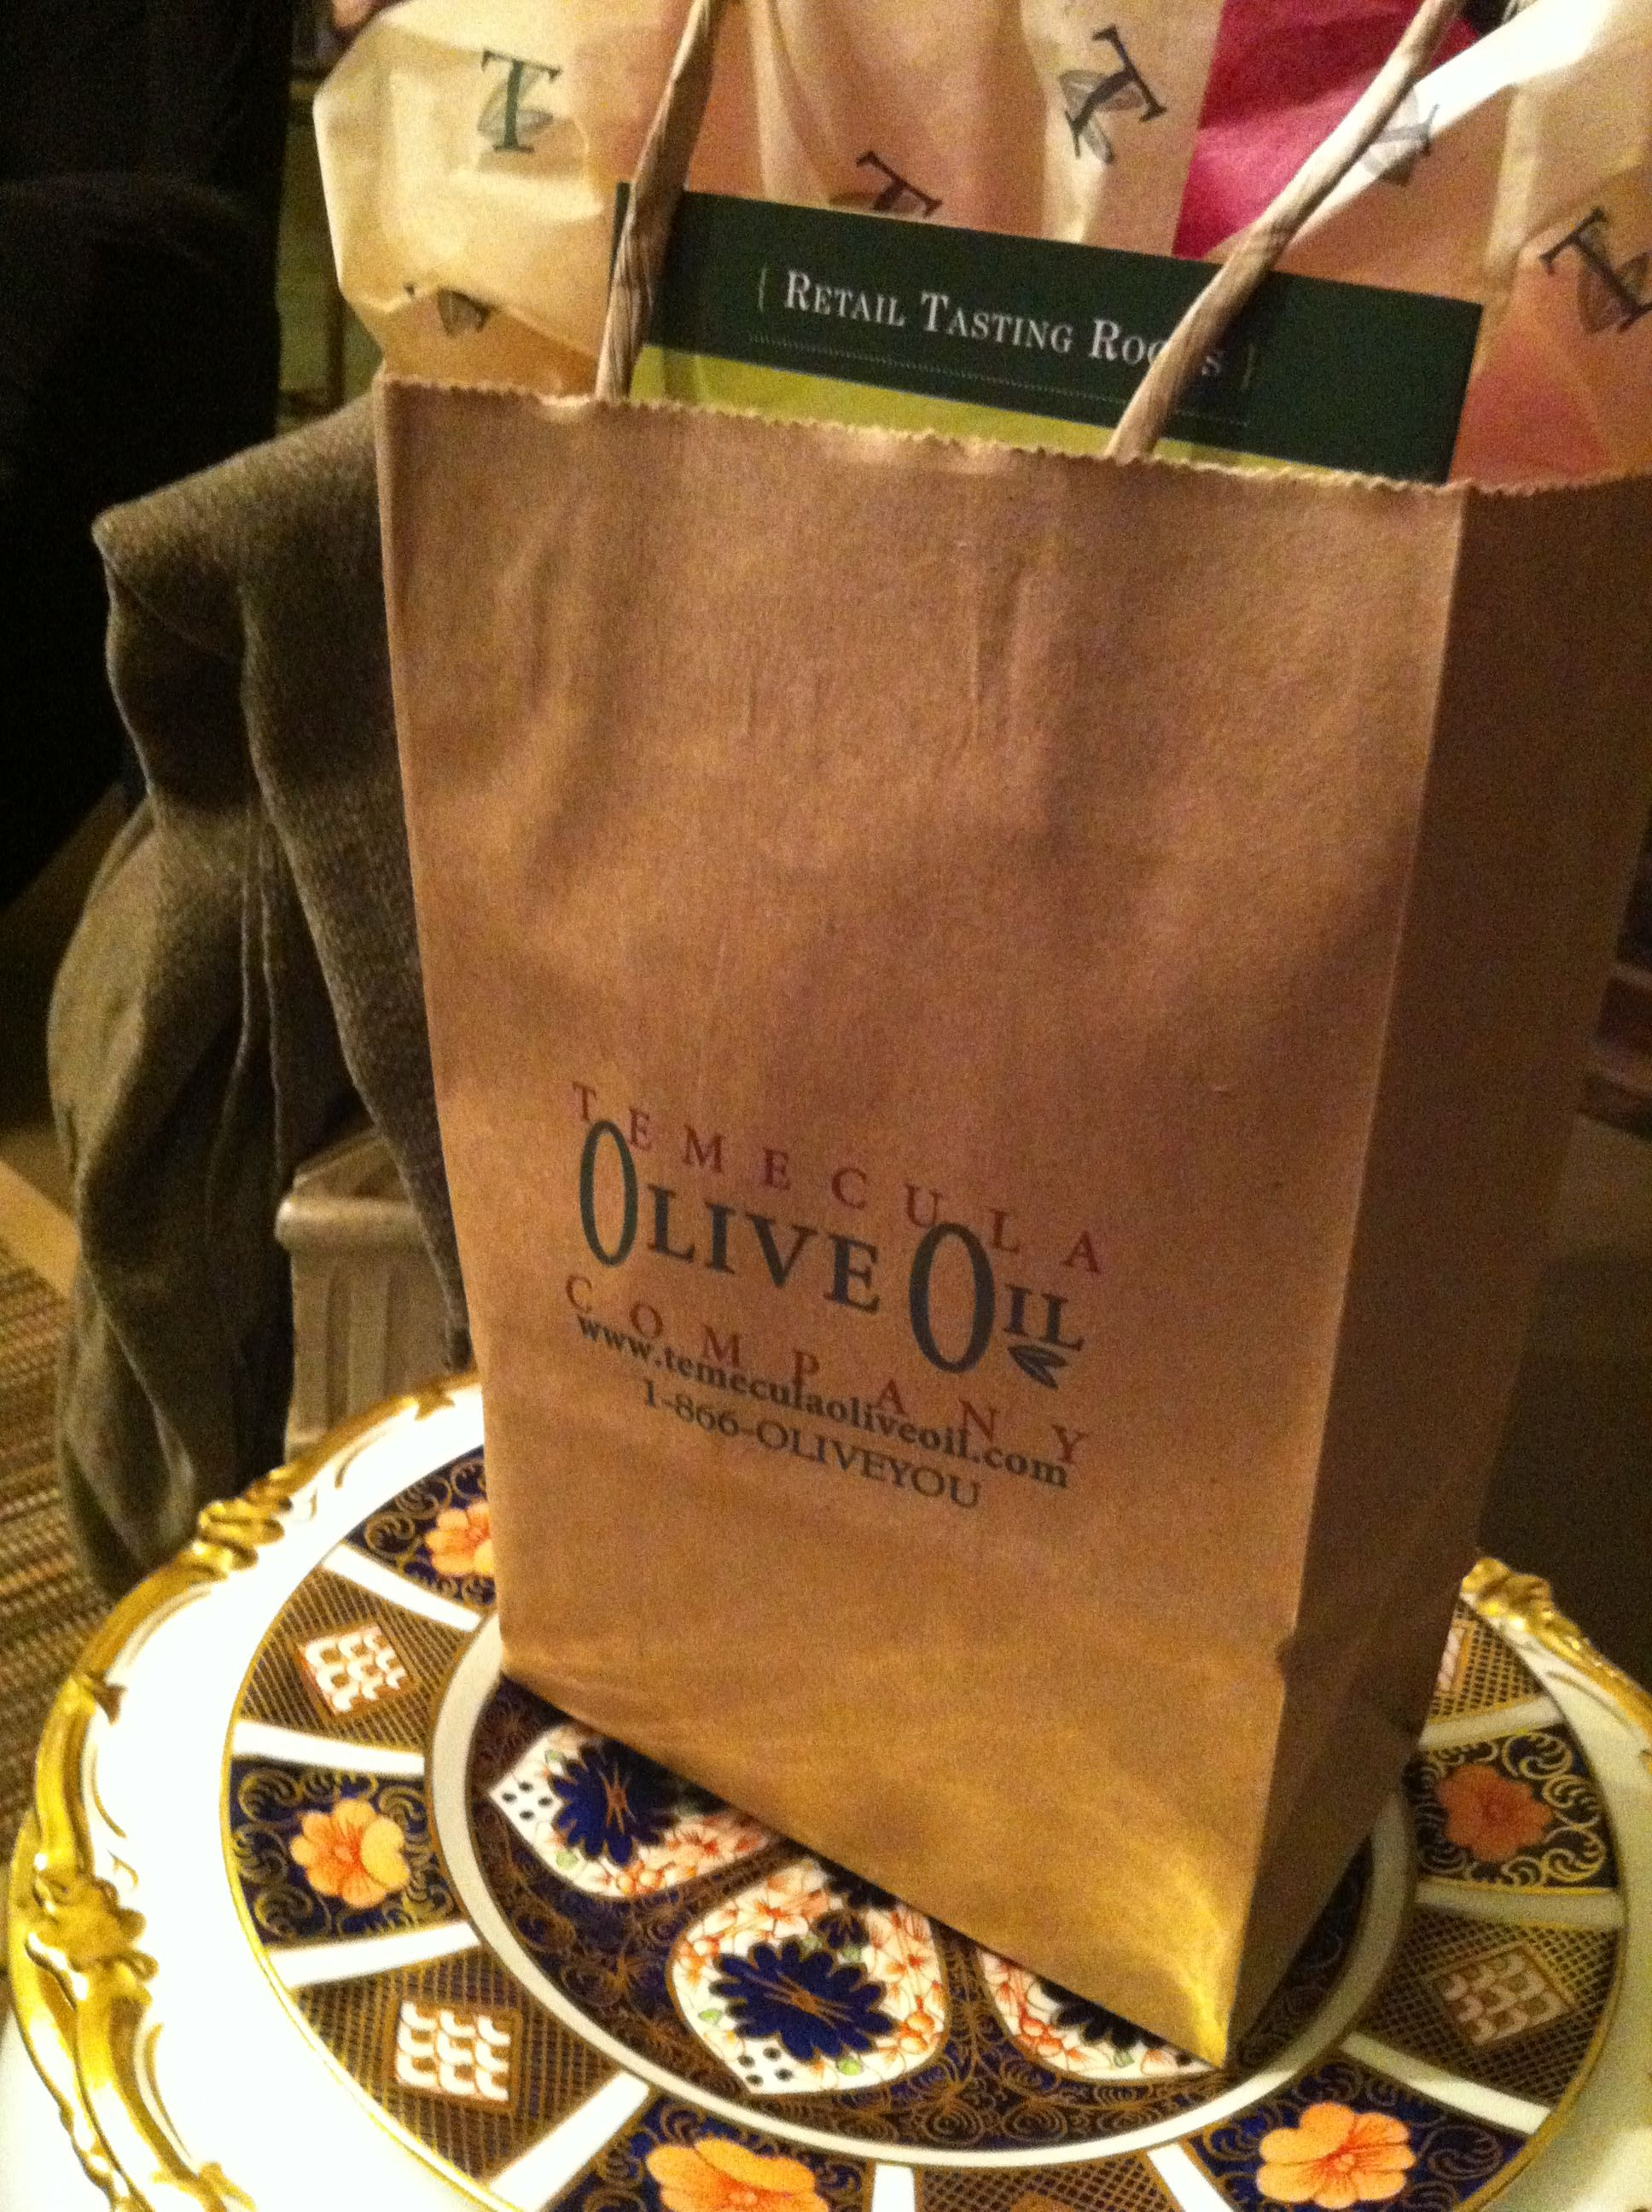 a very little something from Temecula Olive Oil Co.